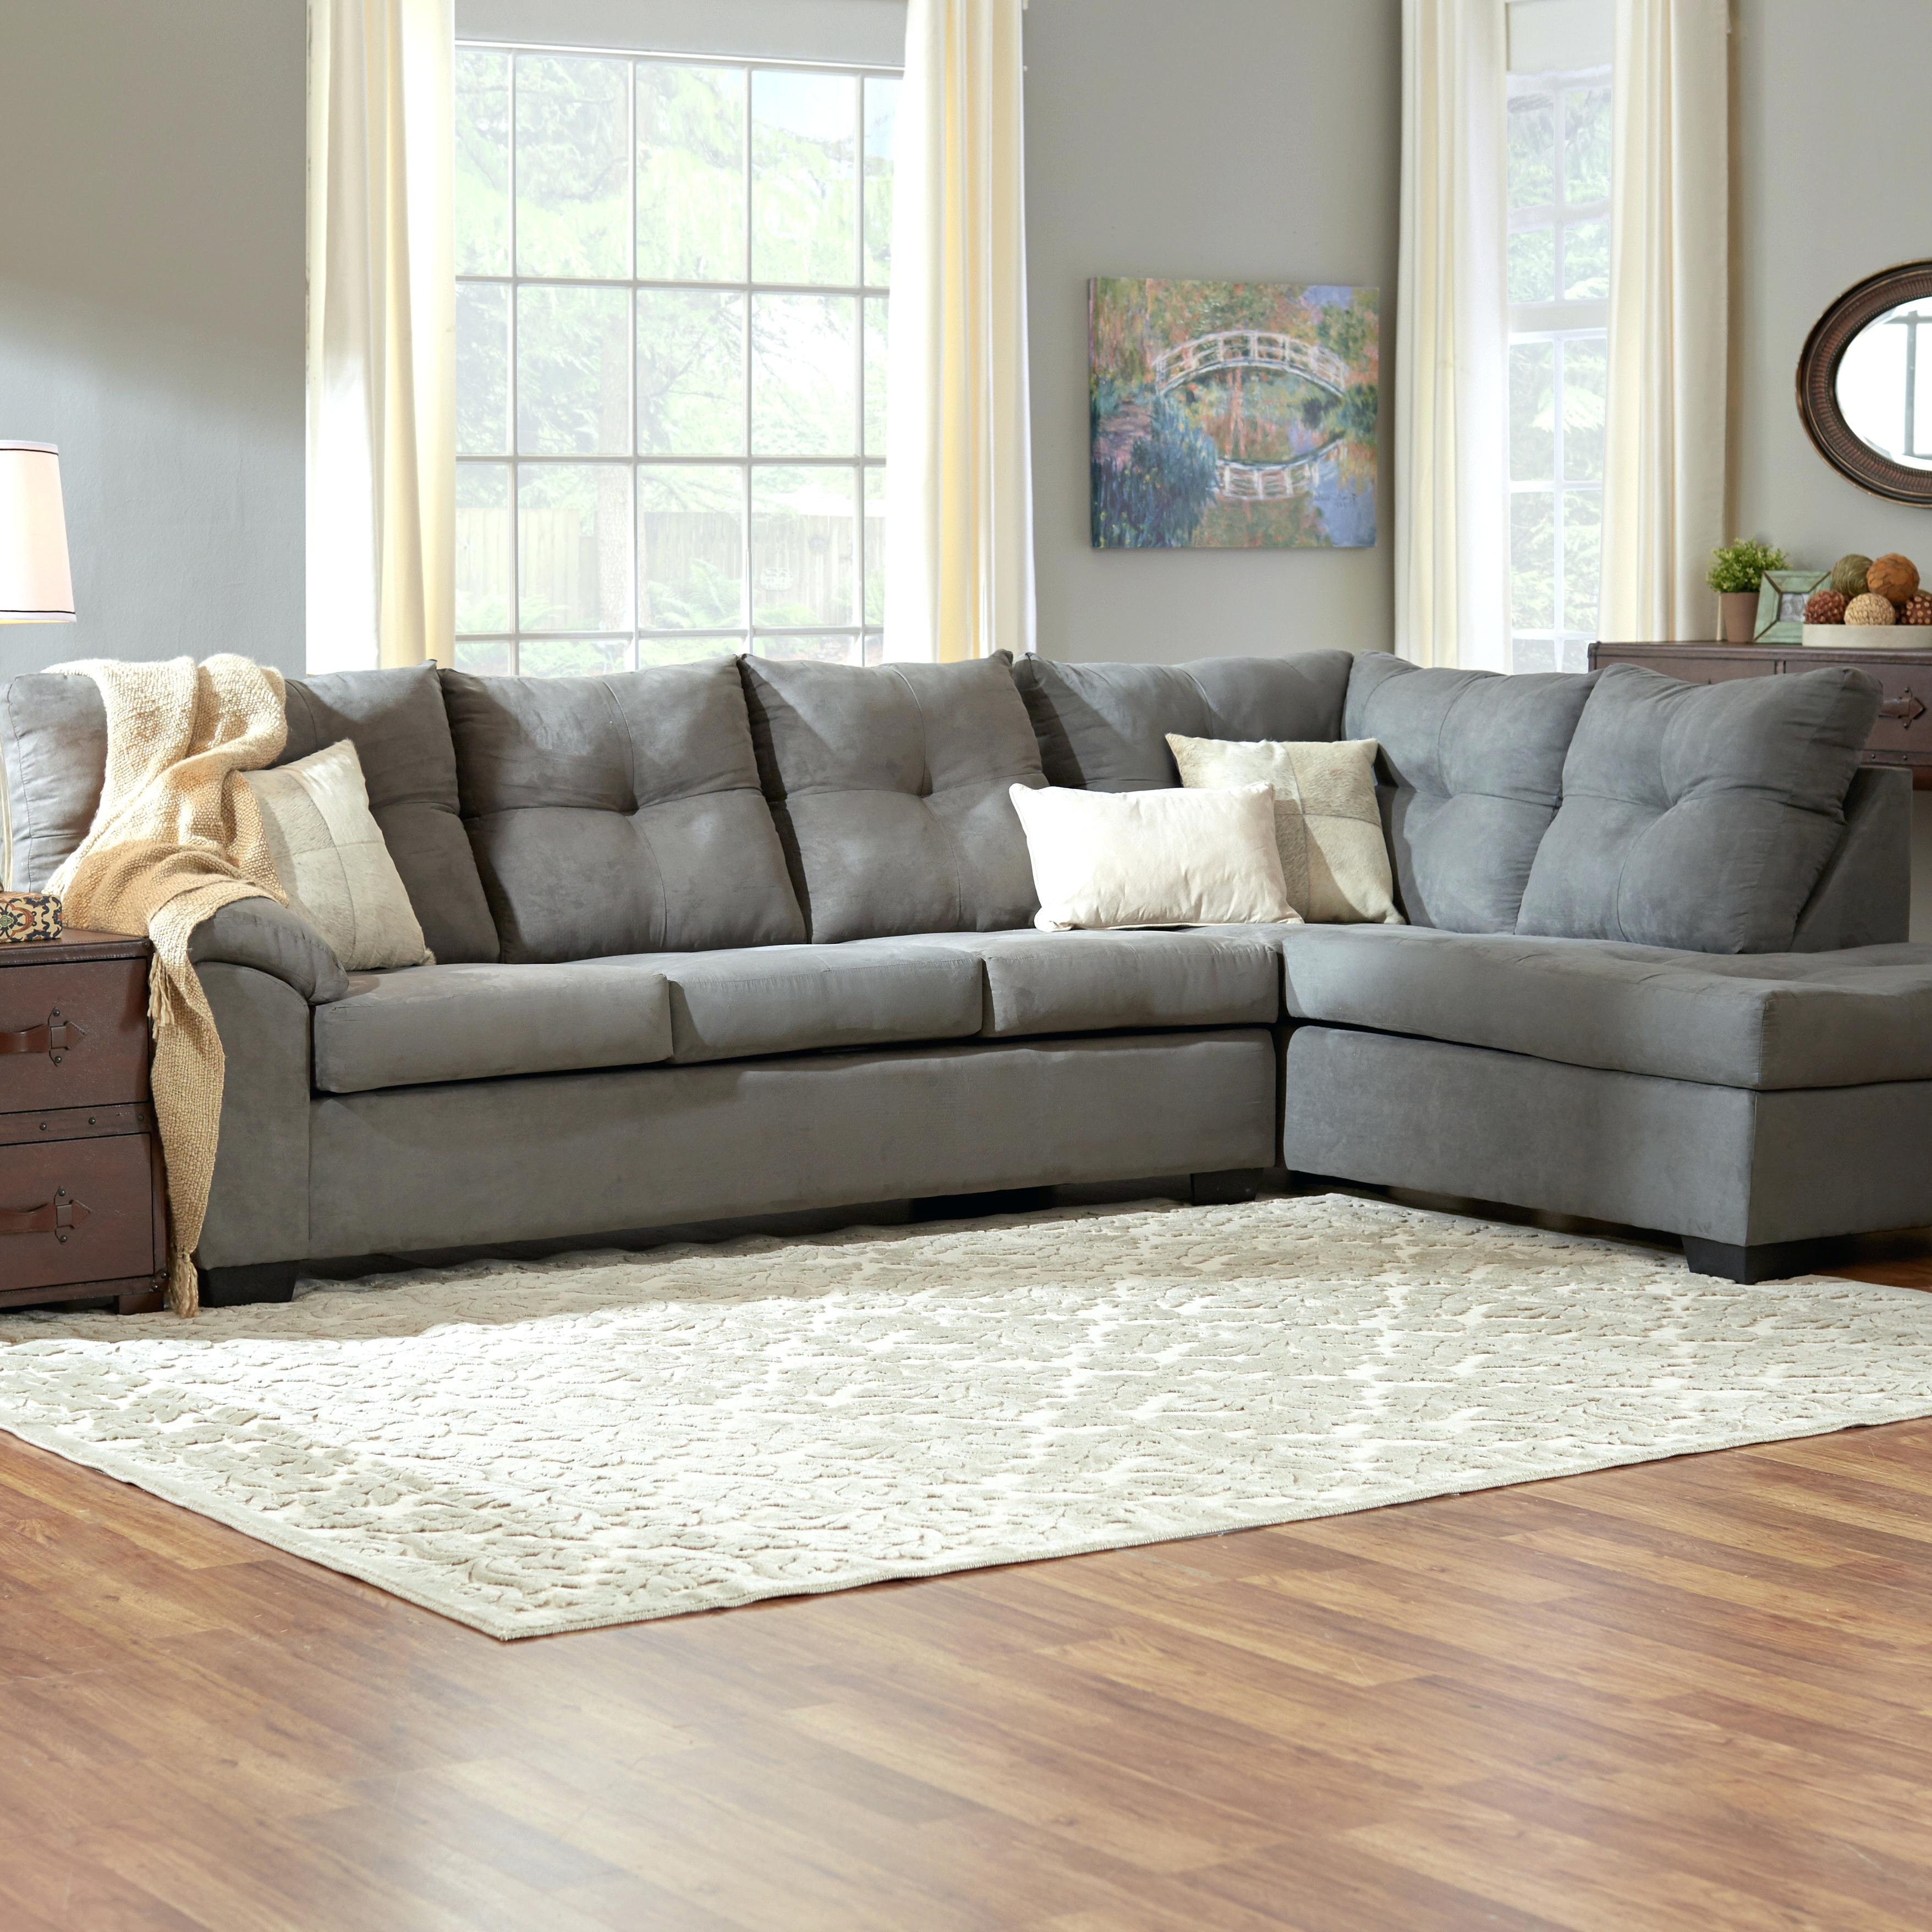 Sofa Sets for Sale Beautiful Leather sofa Set for Sale In Bangalore Sets Prices India Godrej Online